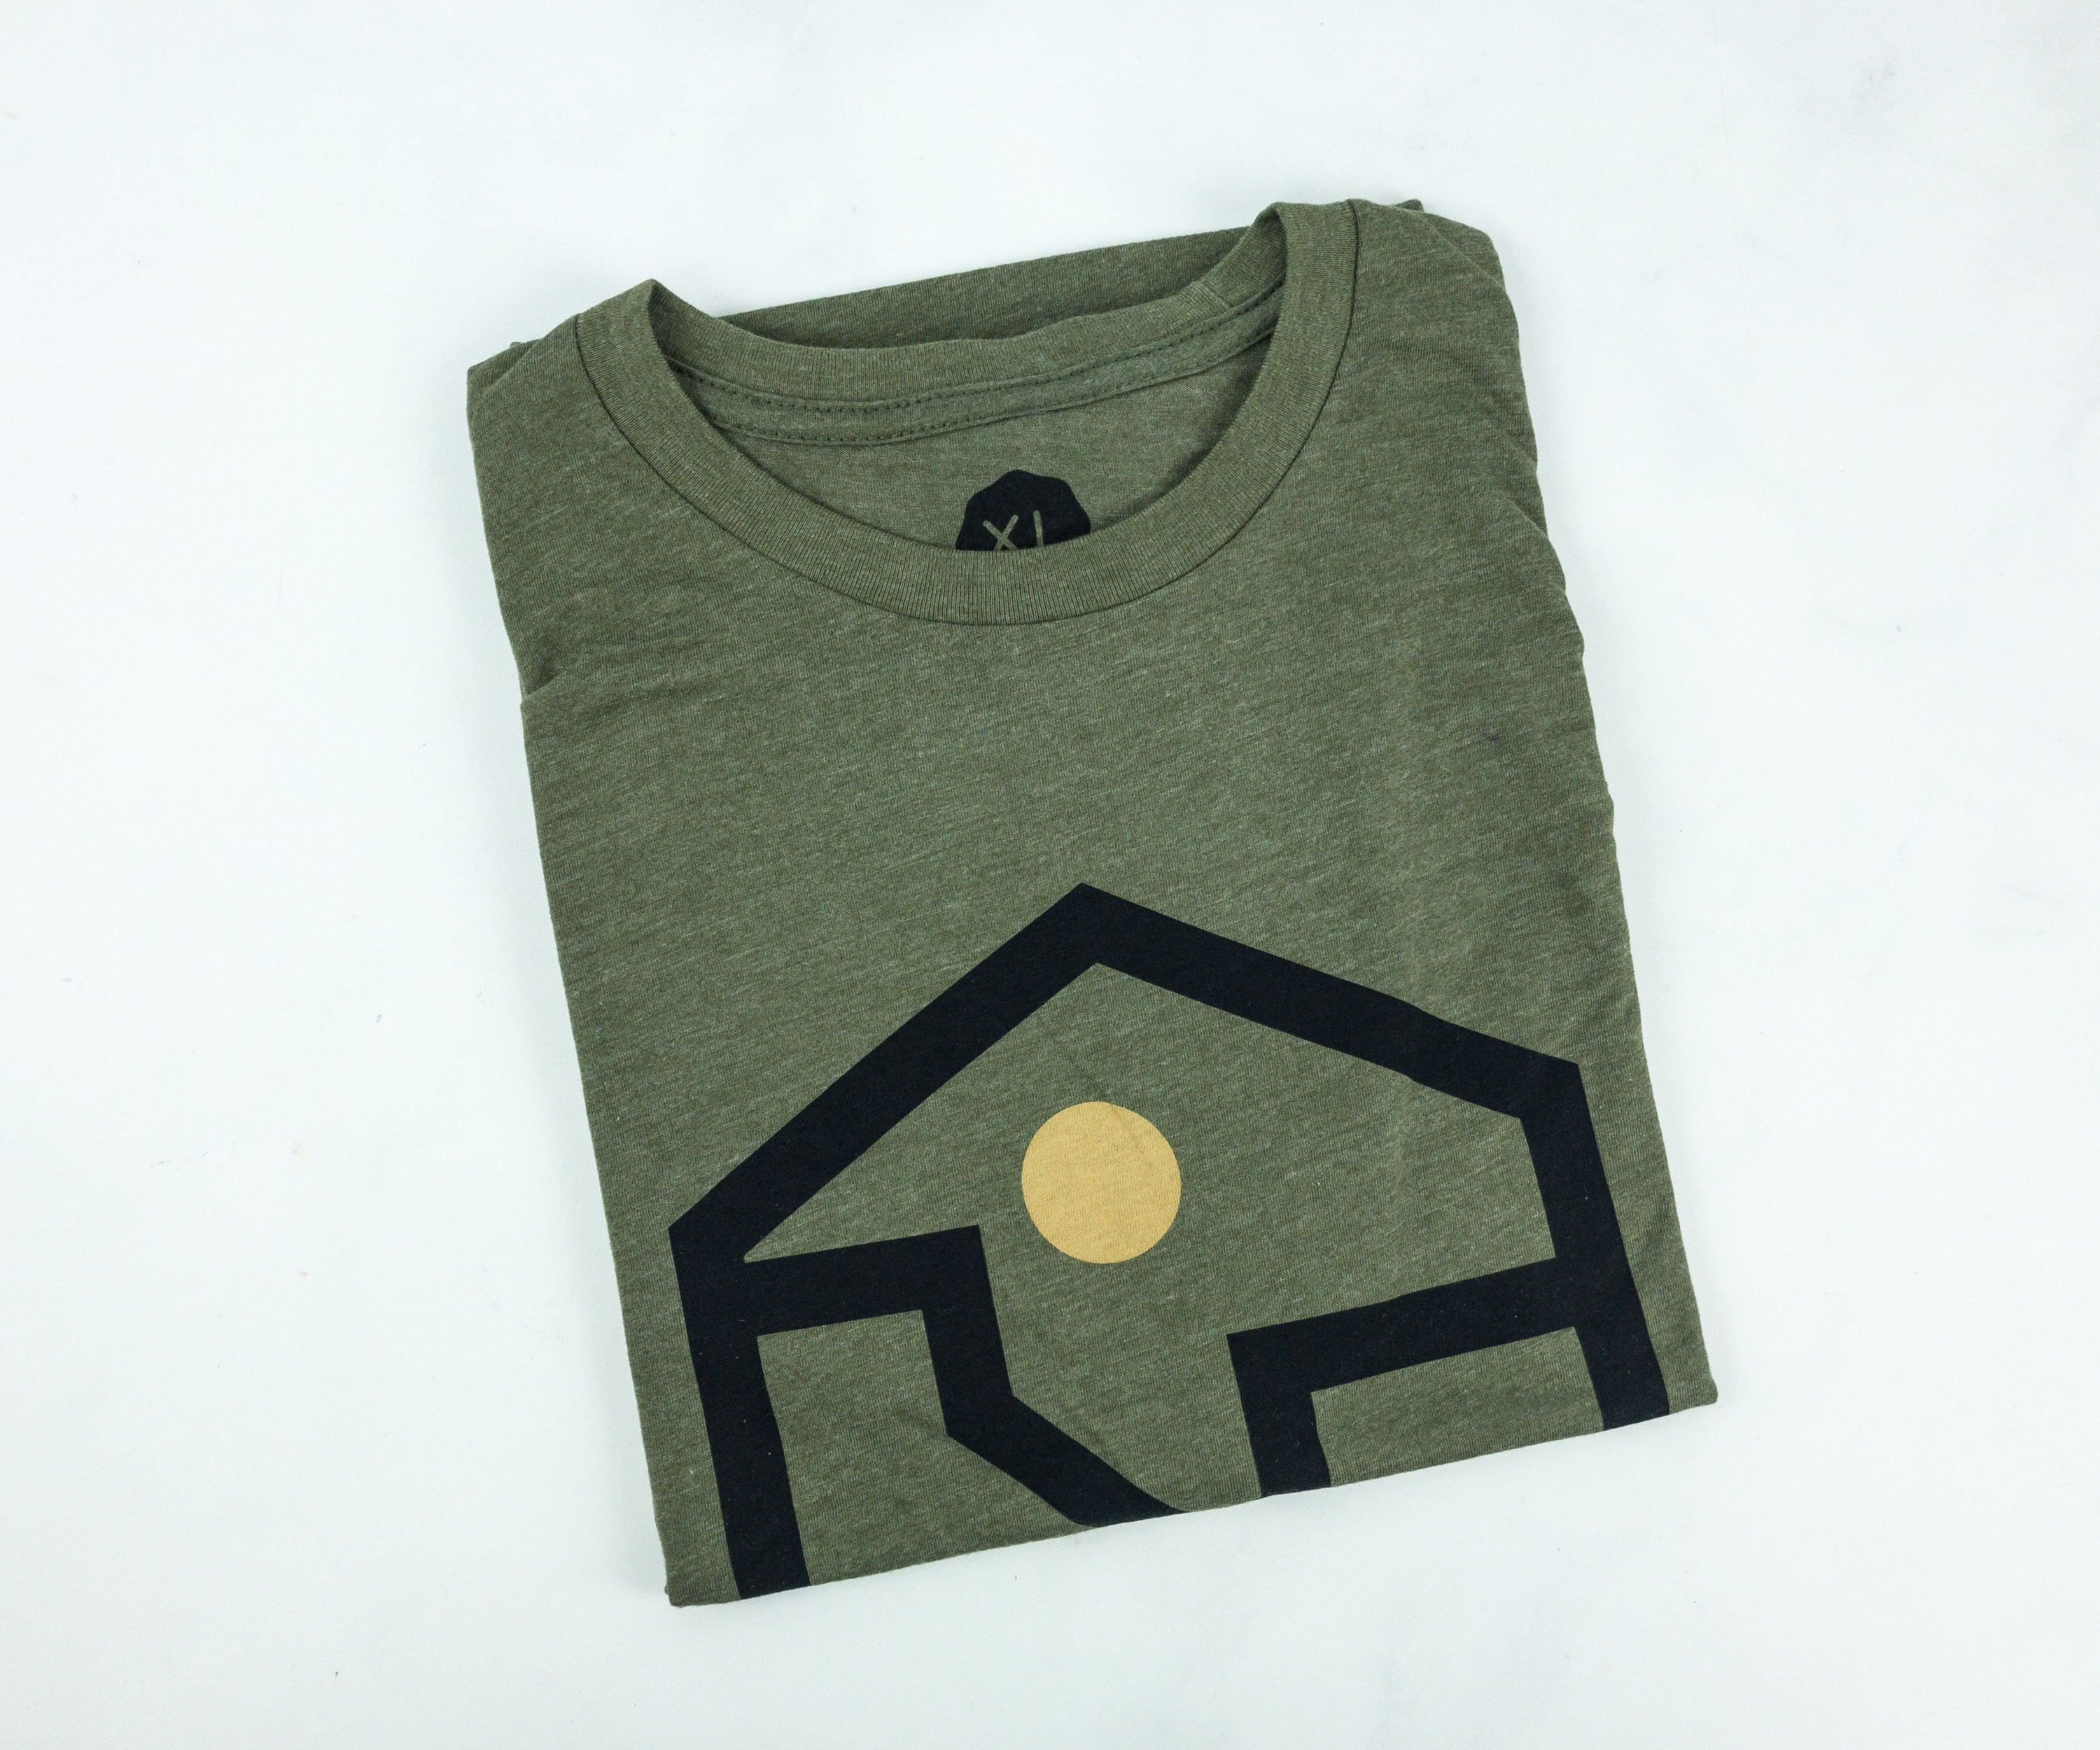 Wohven T-Shirt Subscription Review – May 2019